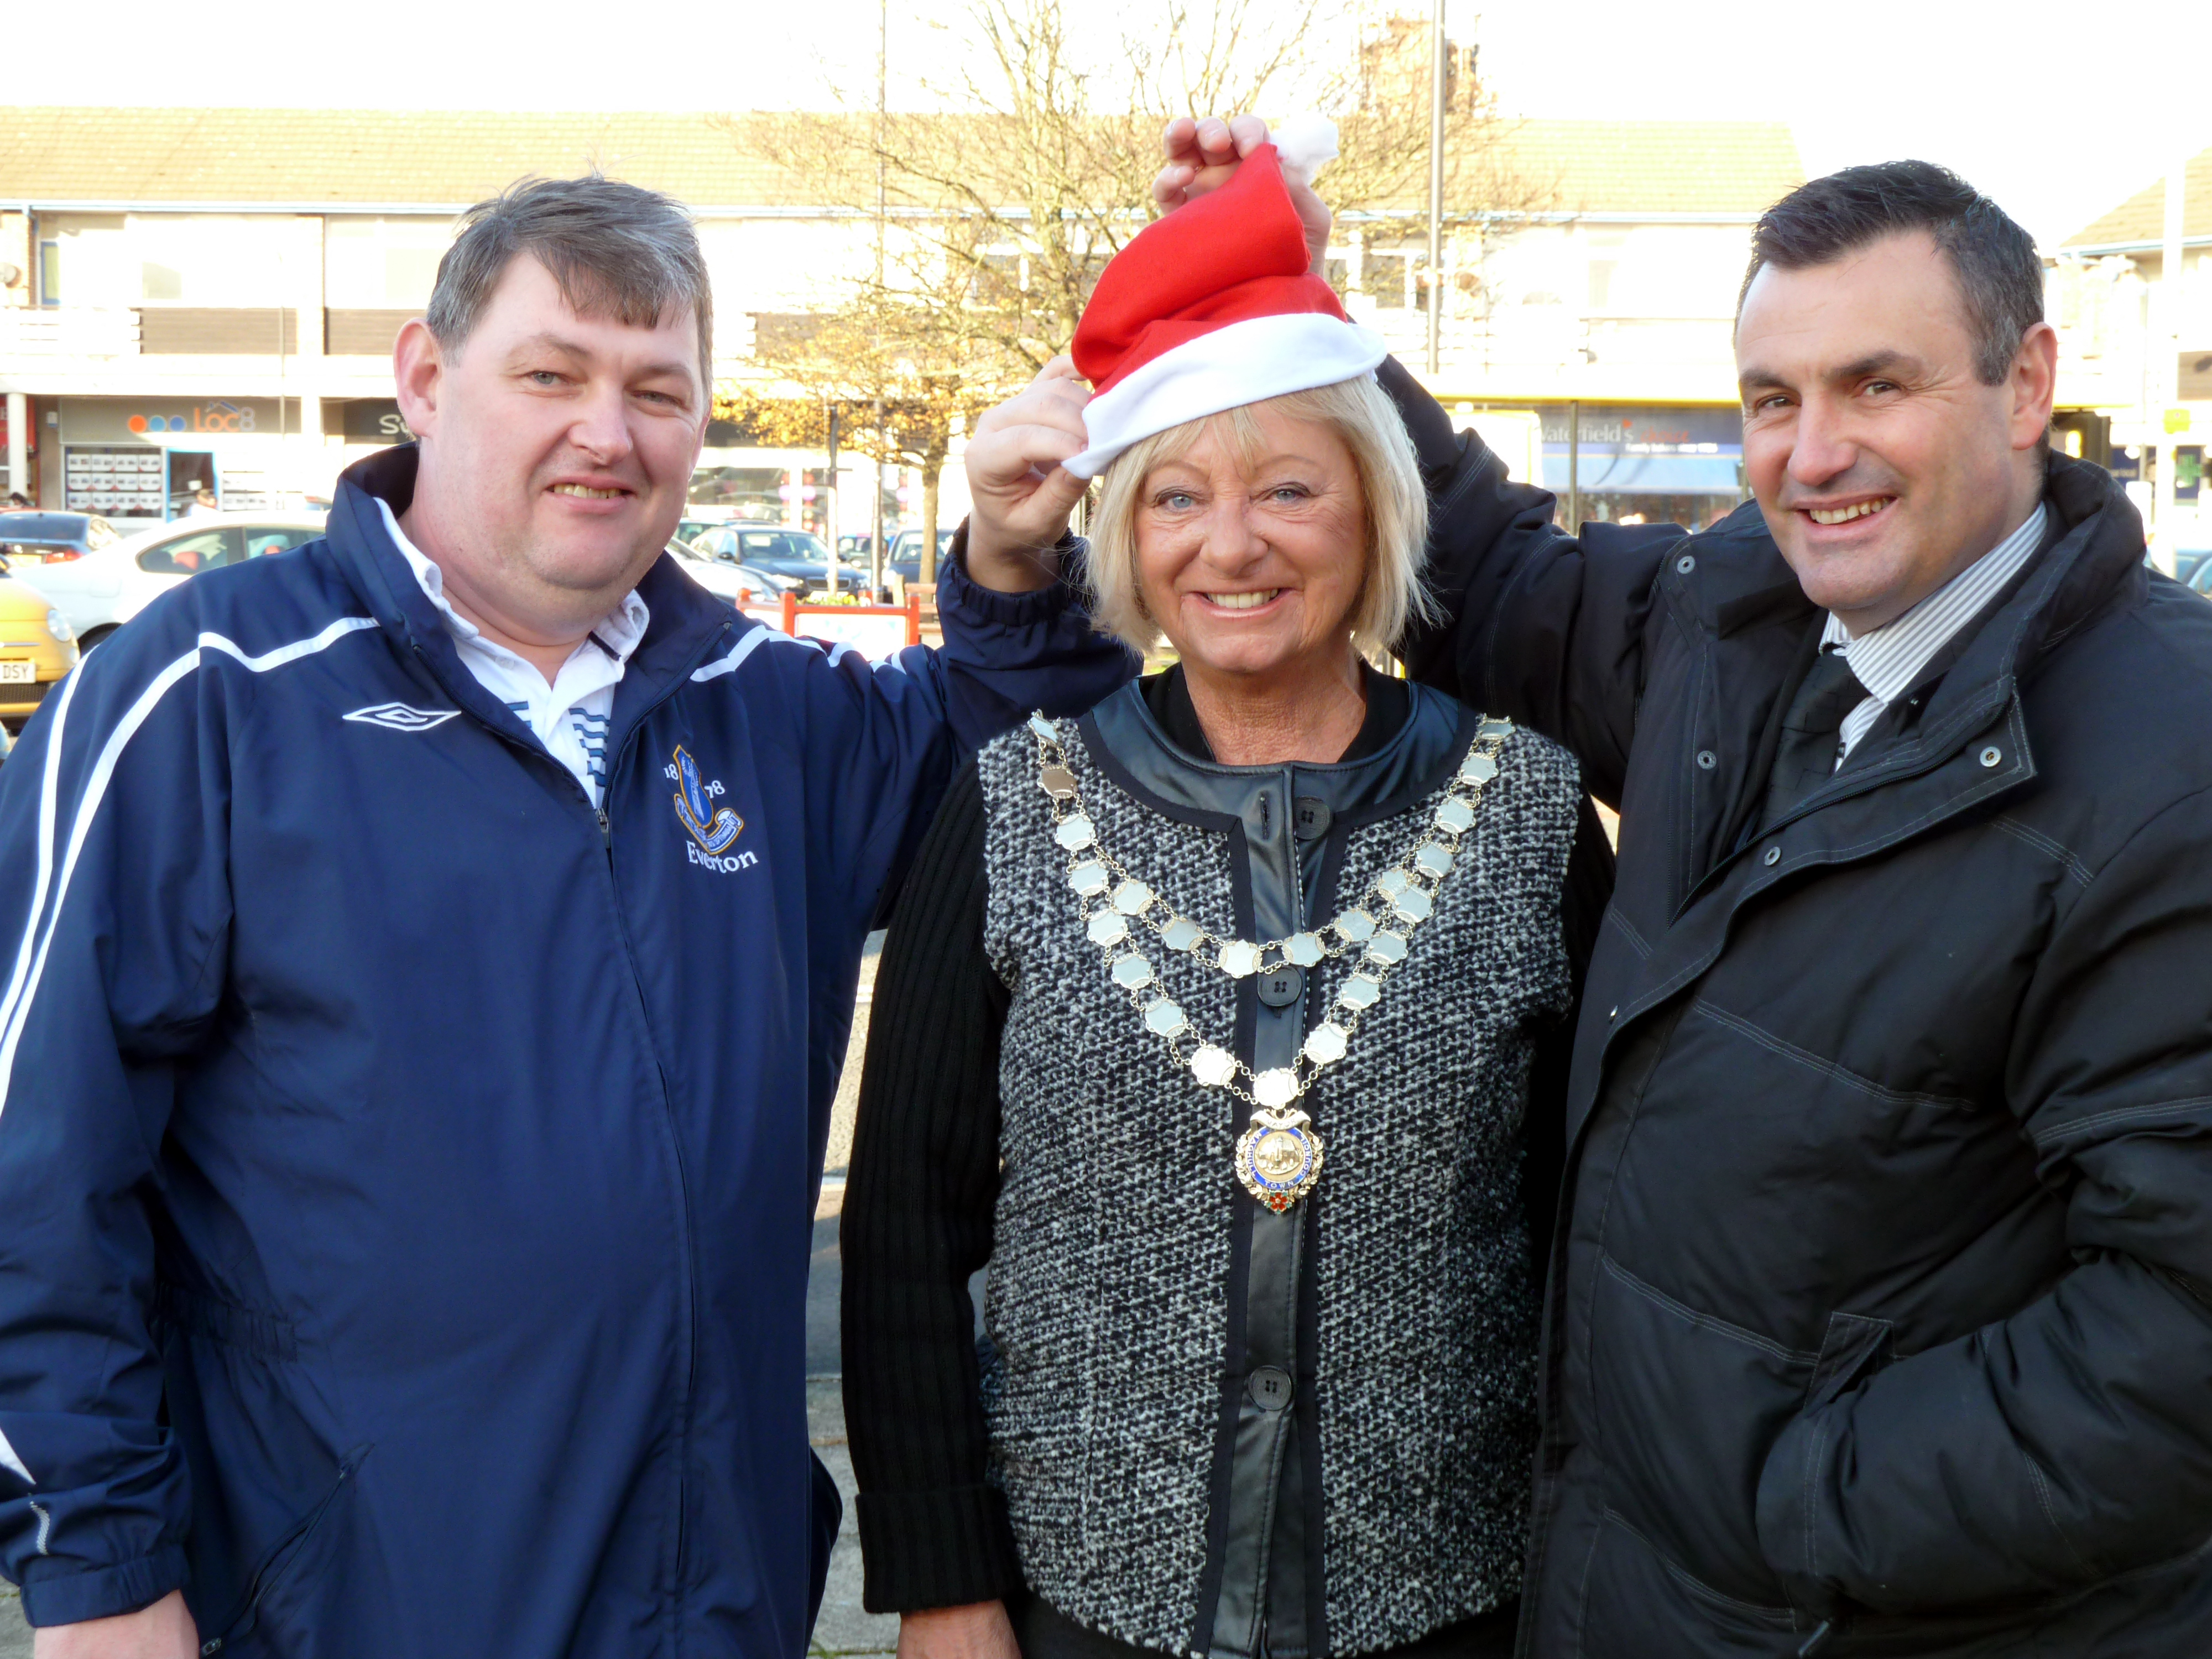 Mayor of Maghull, Labour's Cllr Joan Deegan, fellow Labour Councillor John Jarvis with Maghull Town Team's Steve Maxwell, busy preparing for Maghull's big Christmas lights switch on.